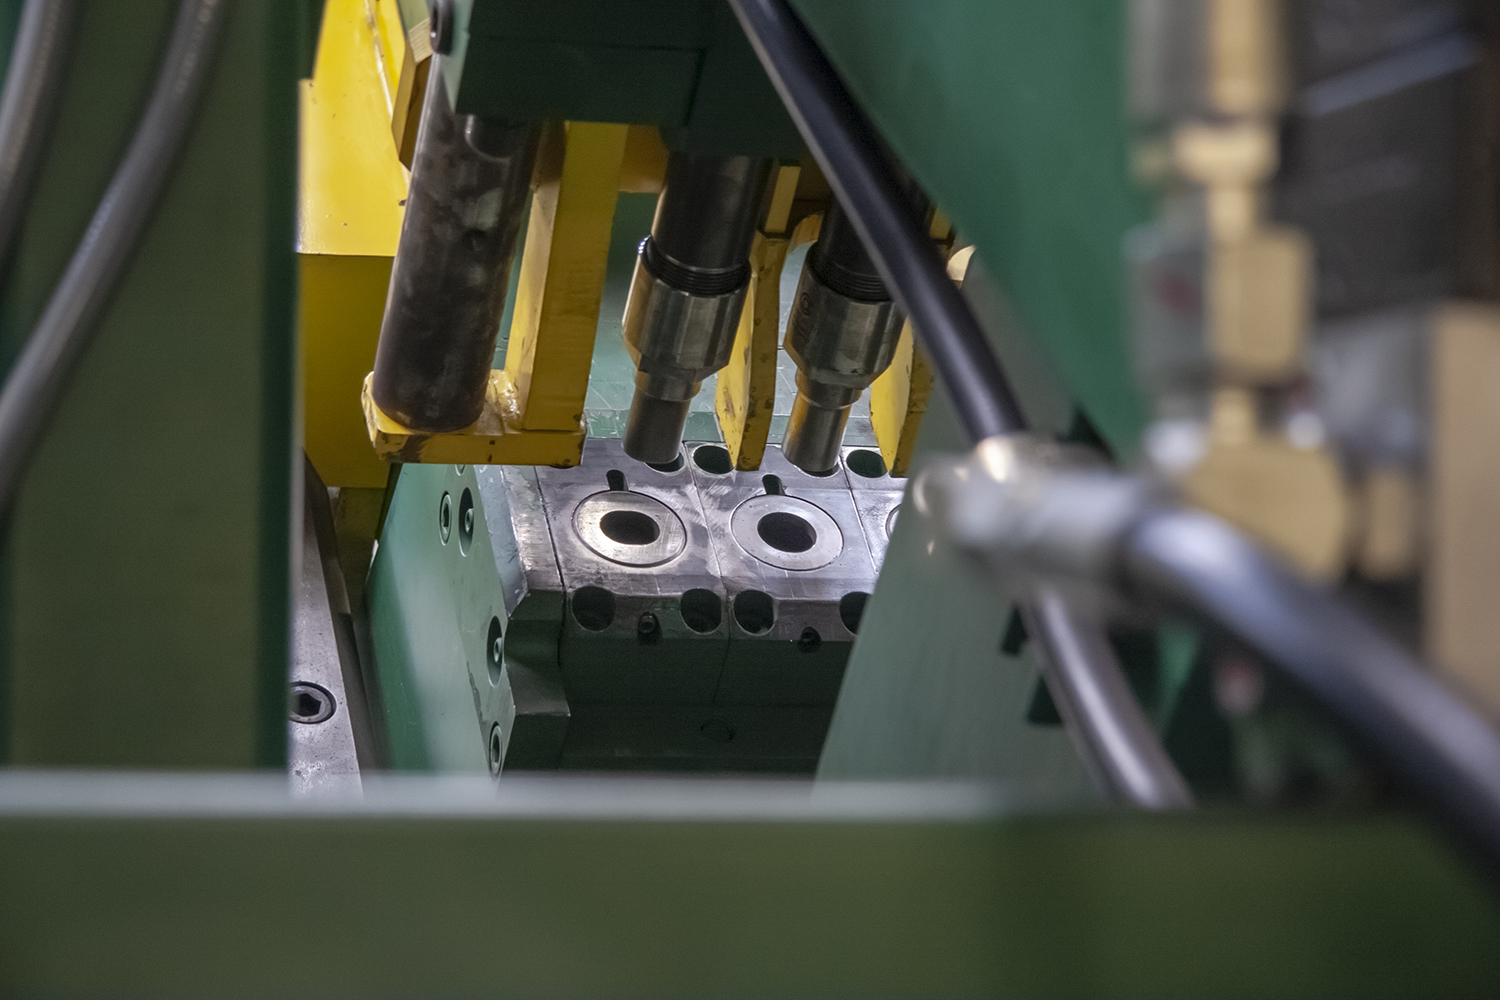 fought-controlled-automation-image-04.jpg